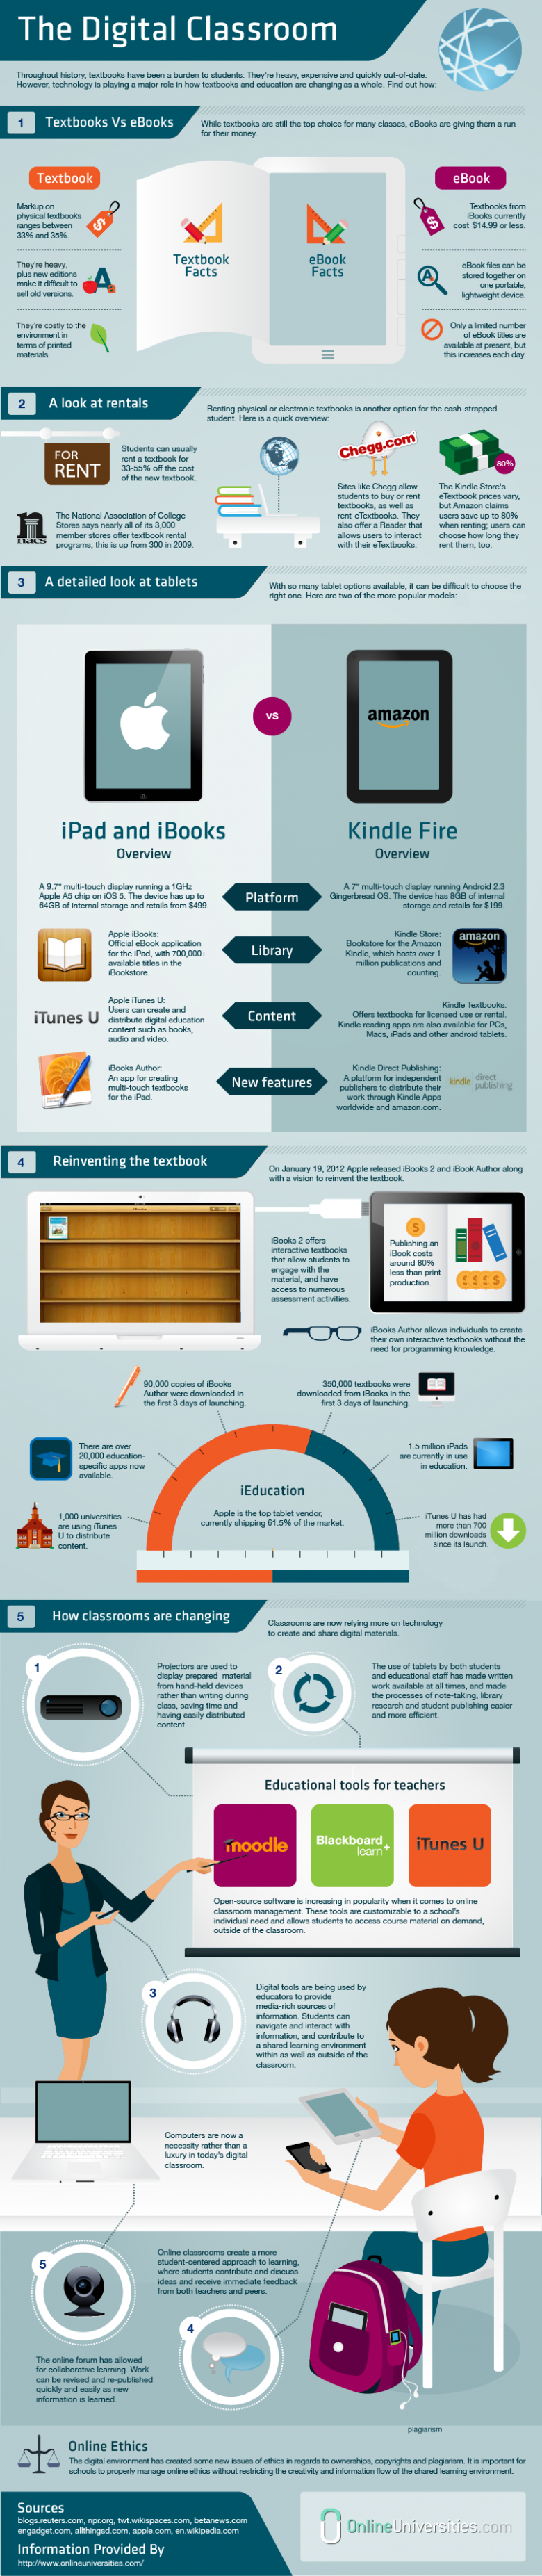 Infographic of the digital classroom